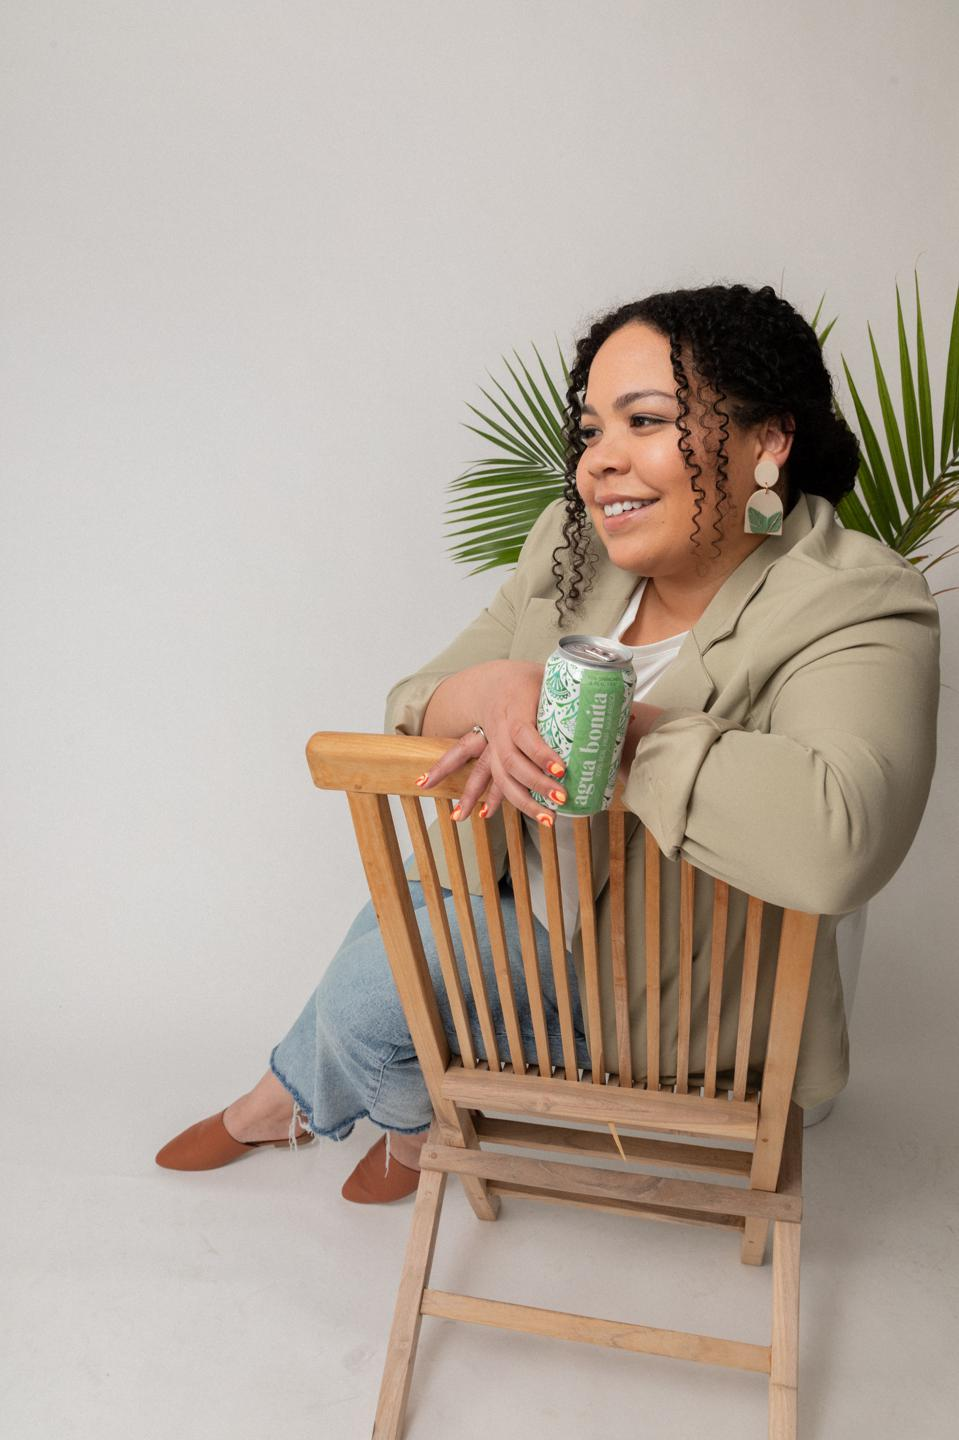 Kayla Castañeda founded Agua Bonita with co-founder Erin PonTell during the pandemic.